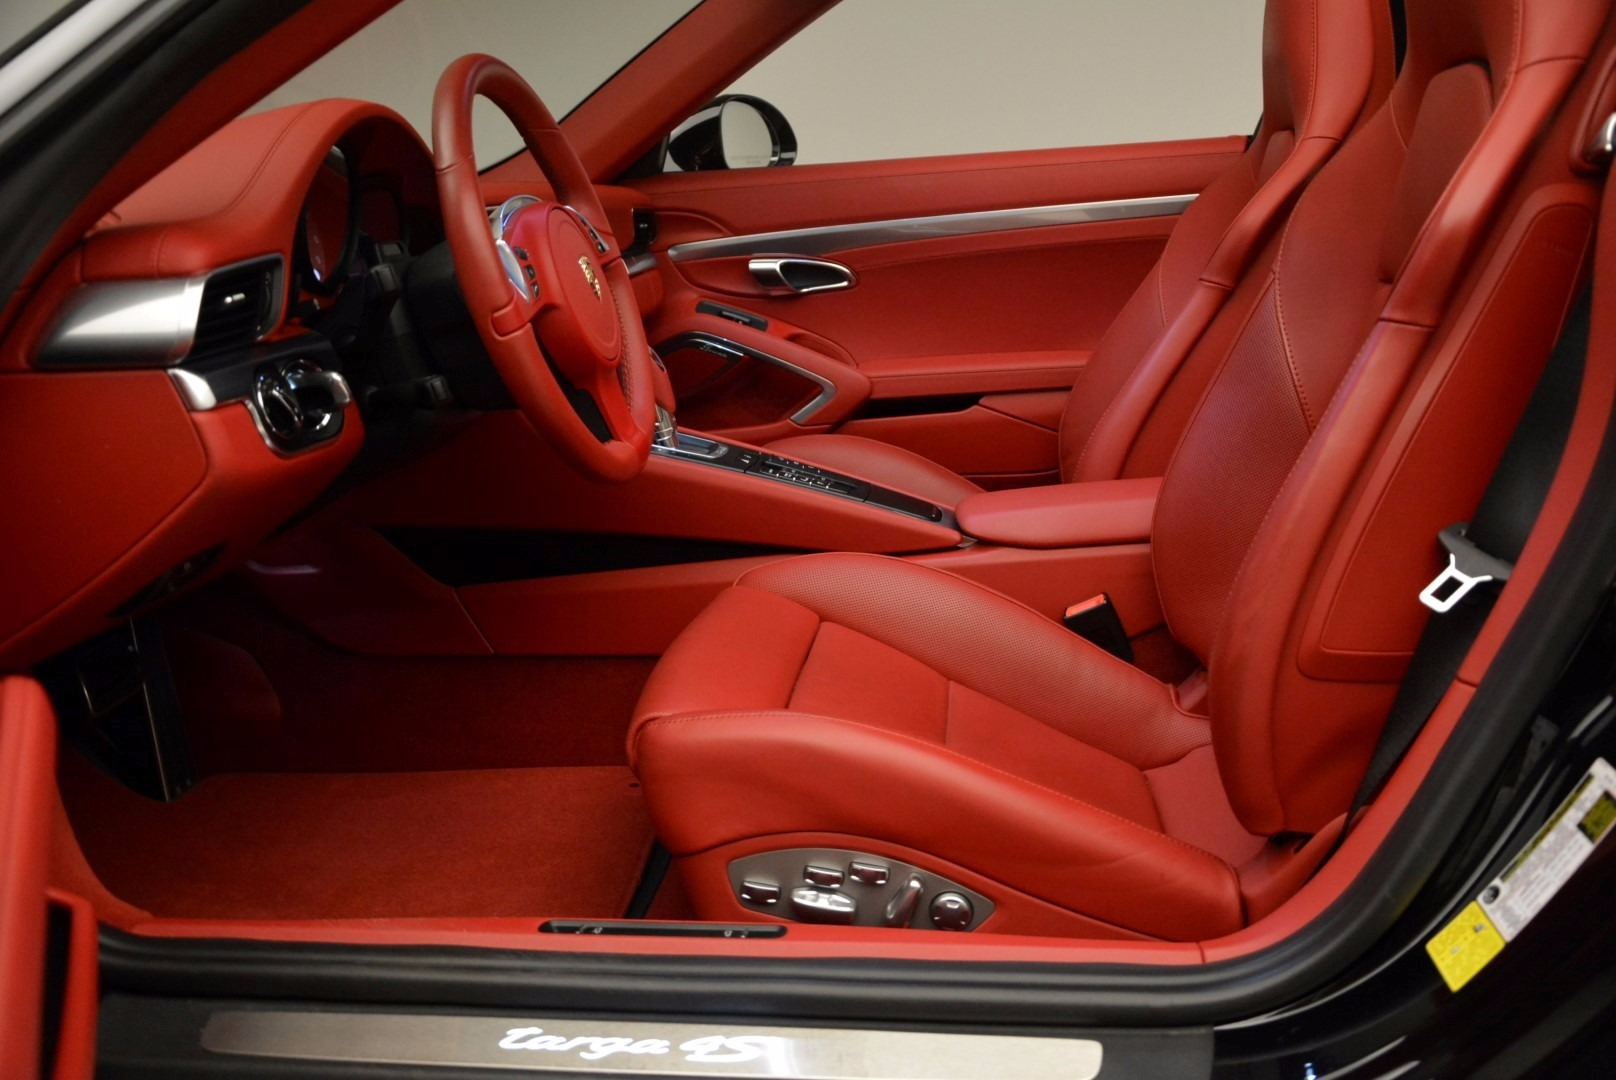 Used 2015 Porsche 911 Targa 4S For Sale In Greenwich, CT 1476_p22